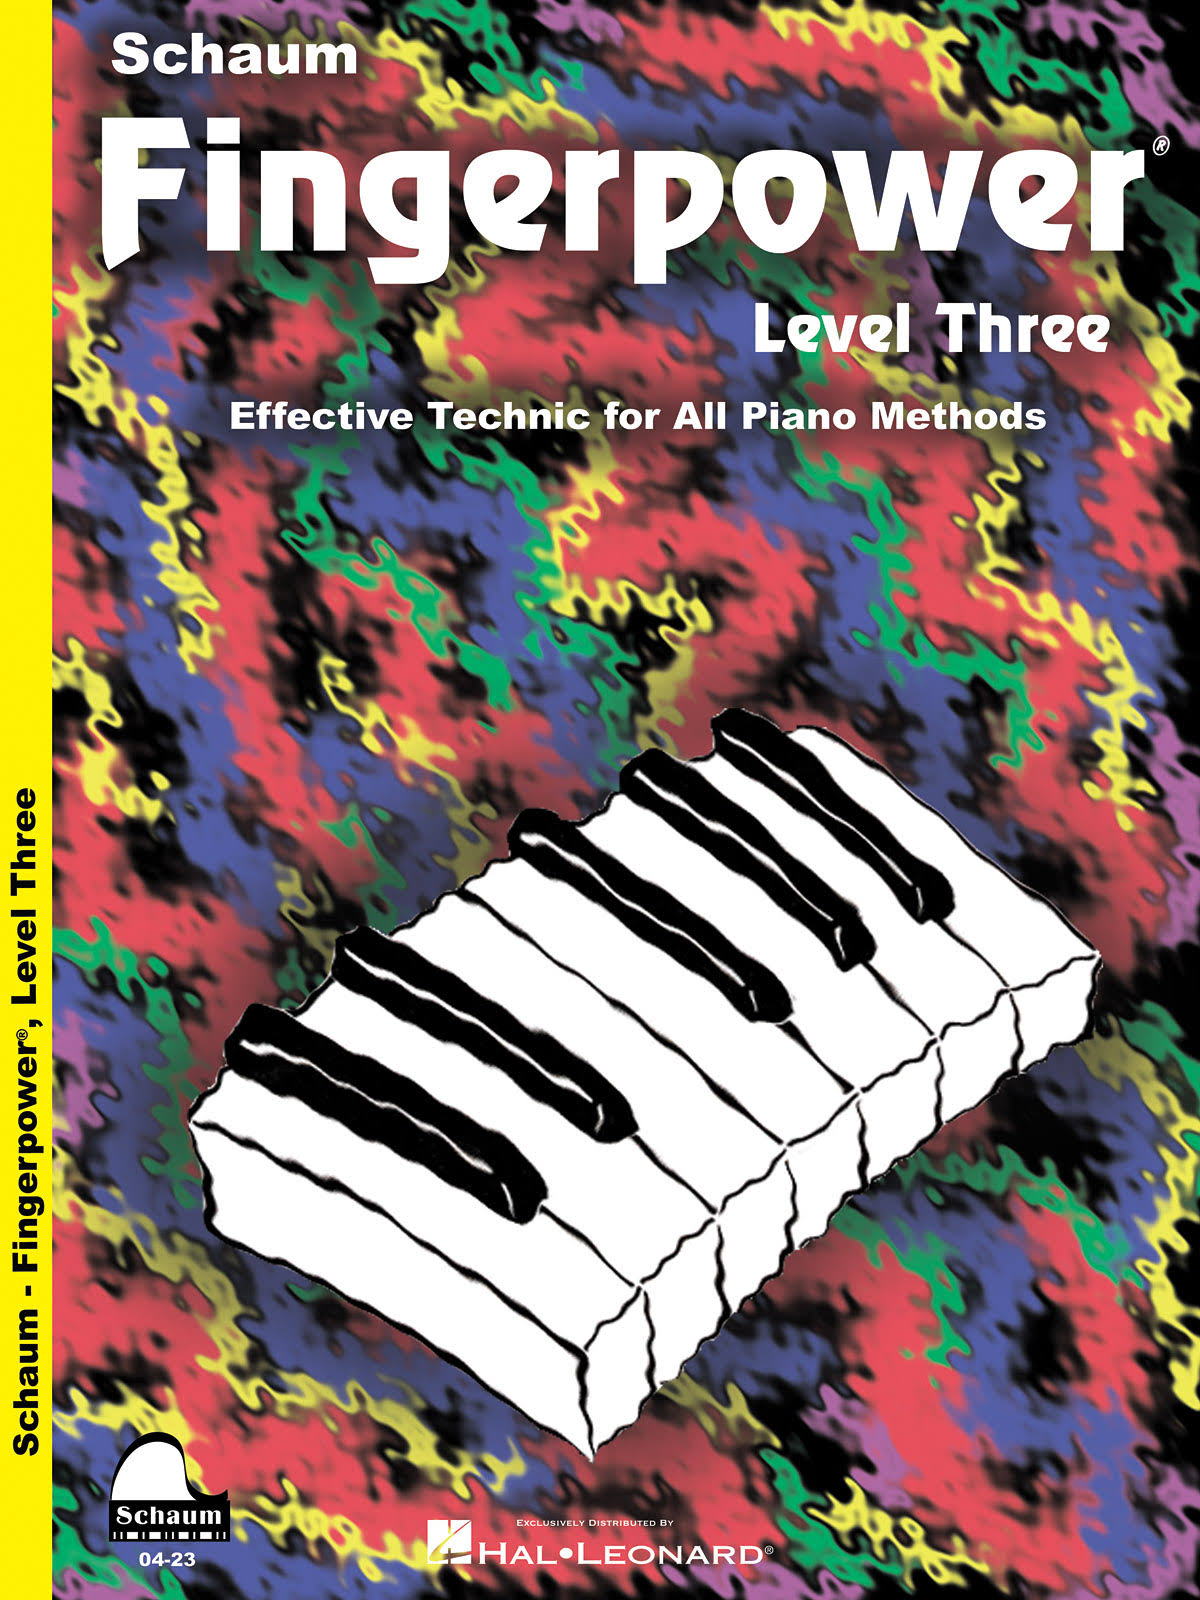 Fingerpower Level 3: Effective Technic for All Piano Methods - Hal Leonard